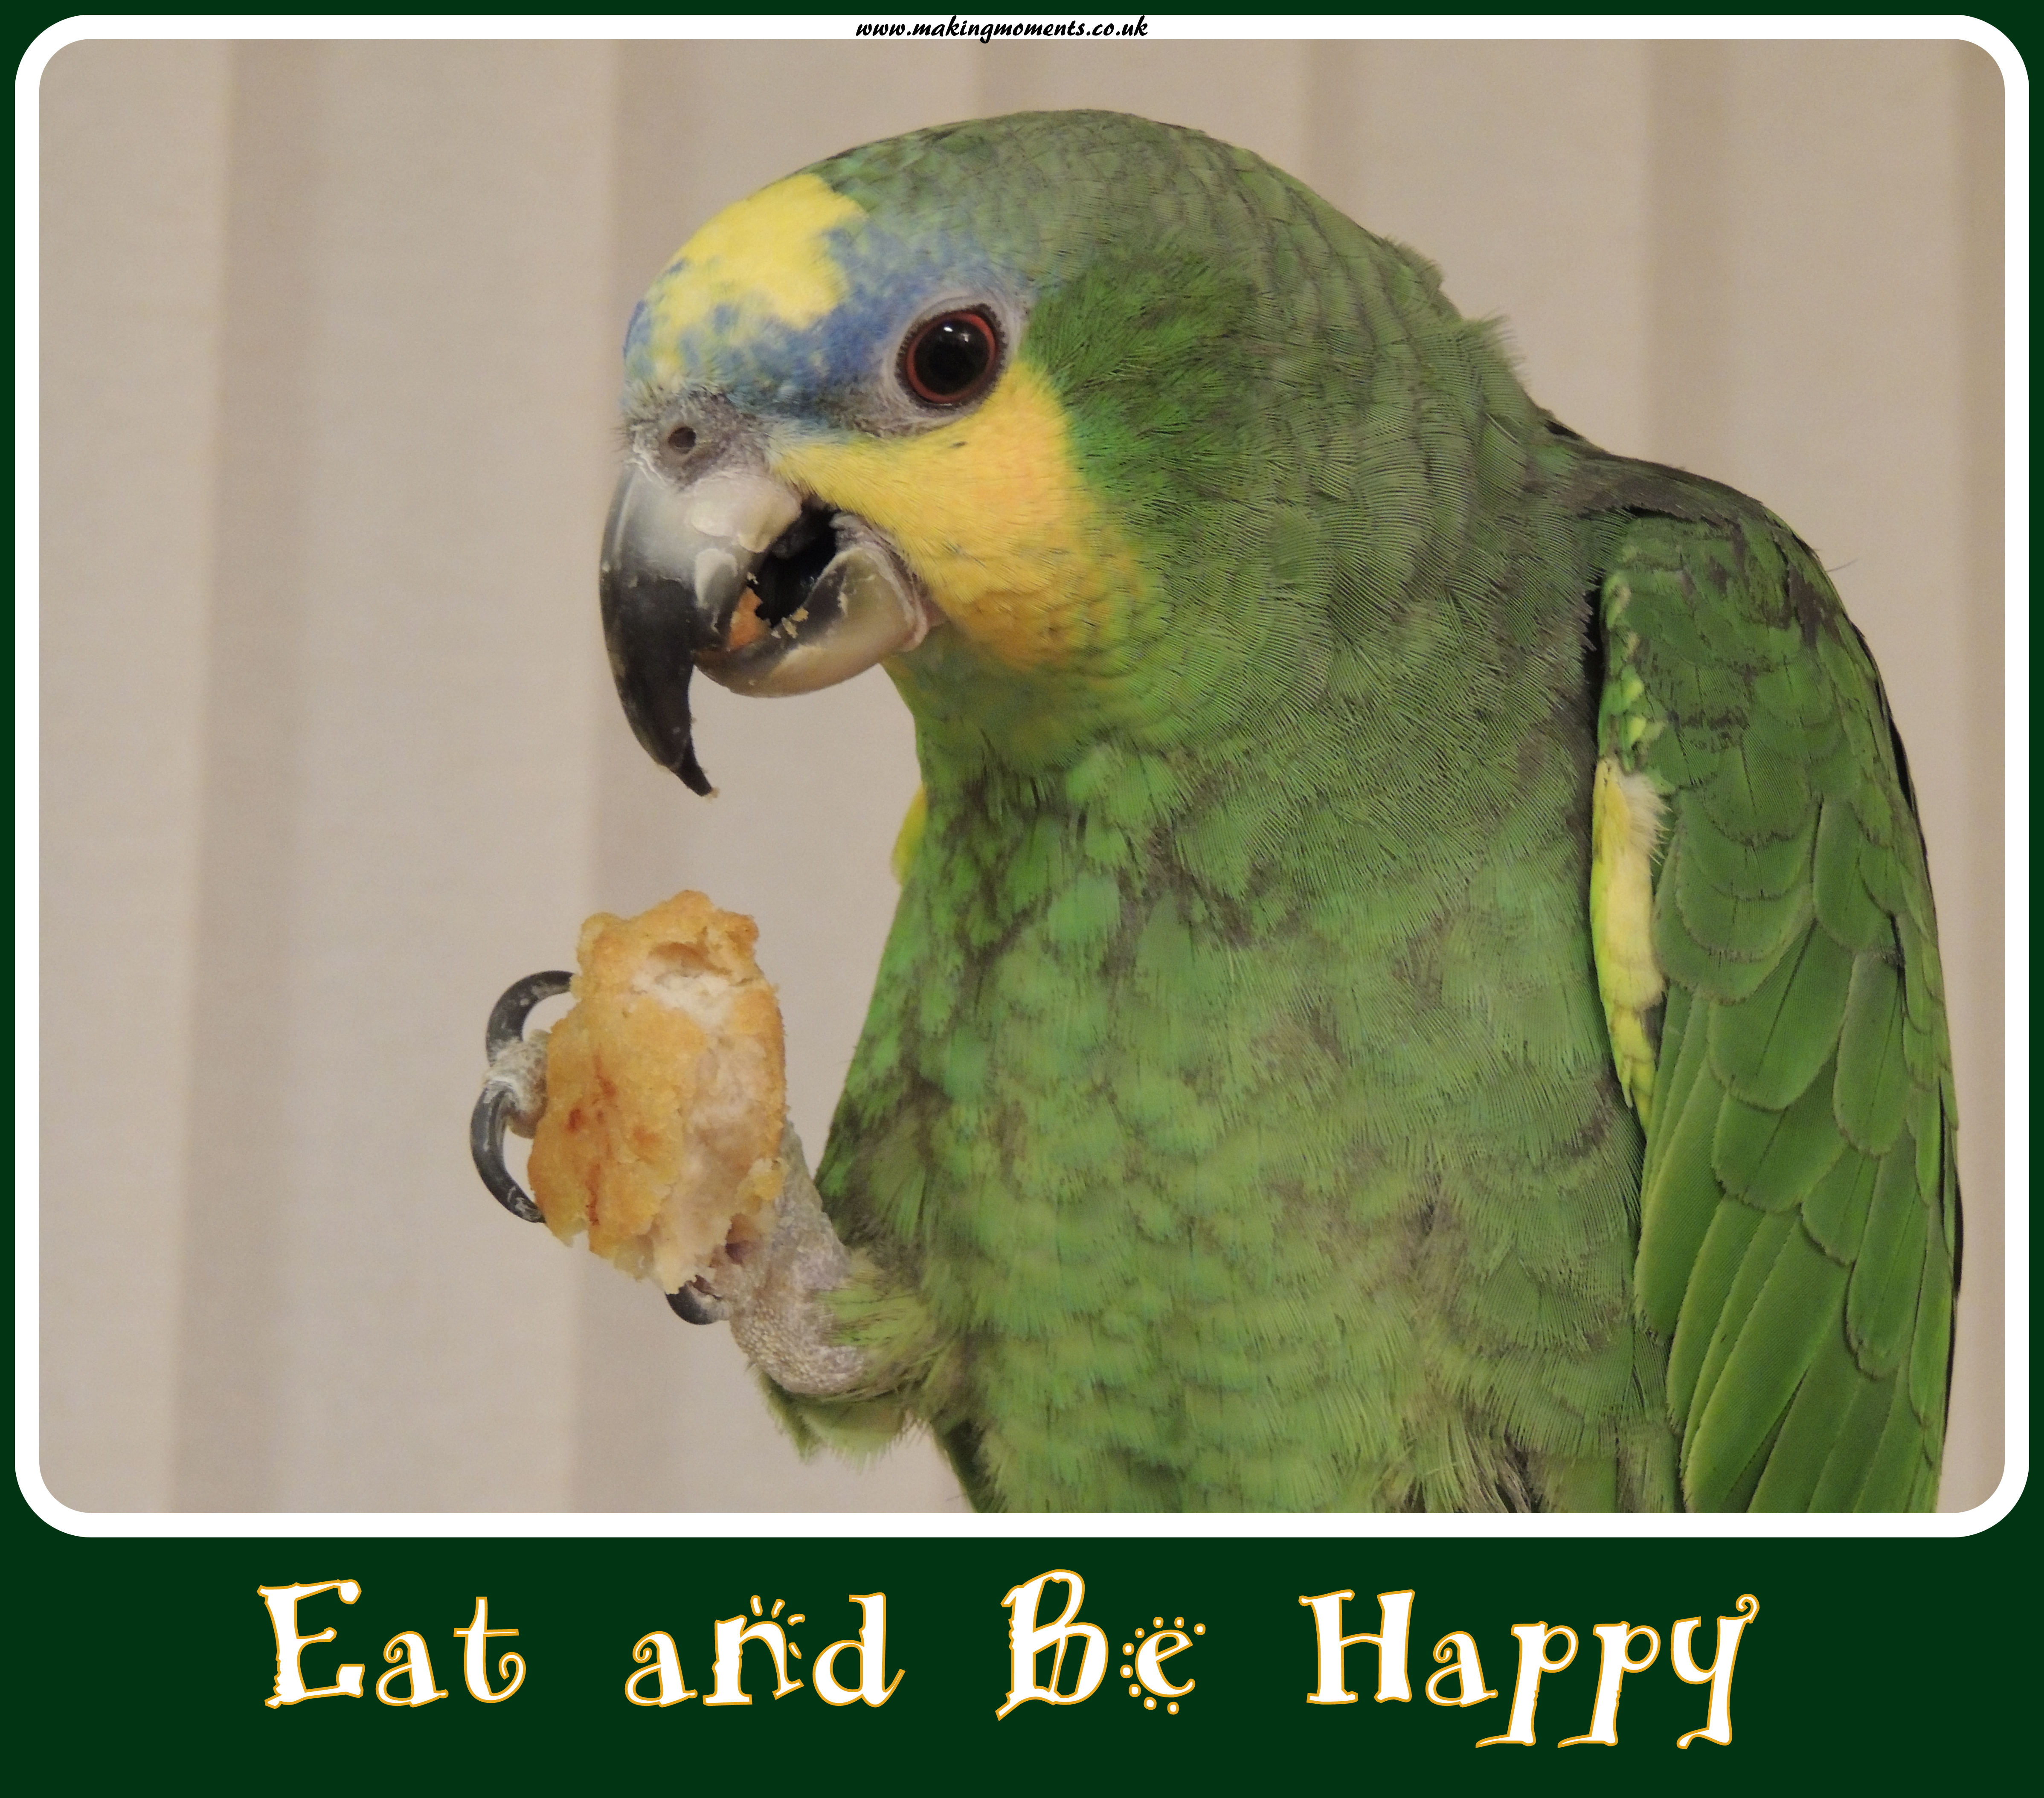 Eat and Be Happy